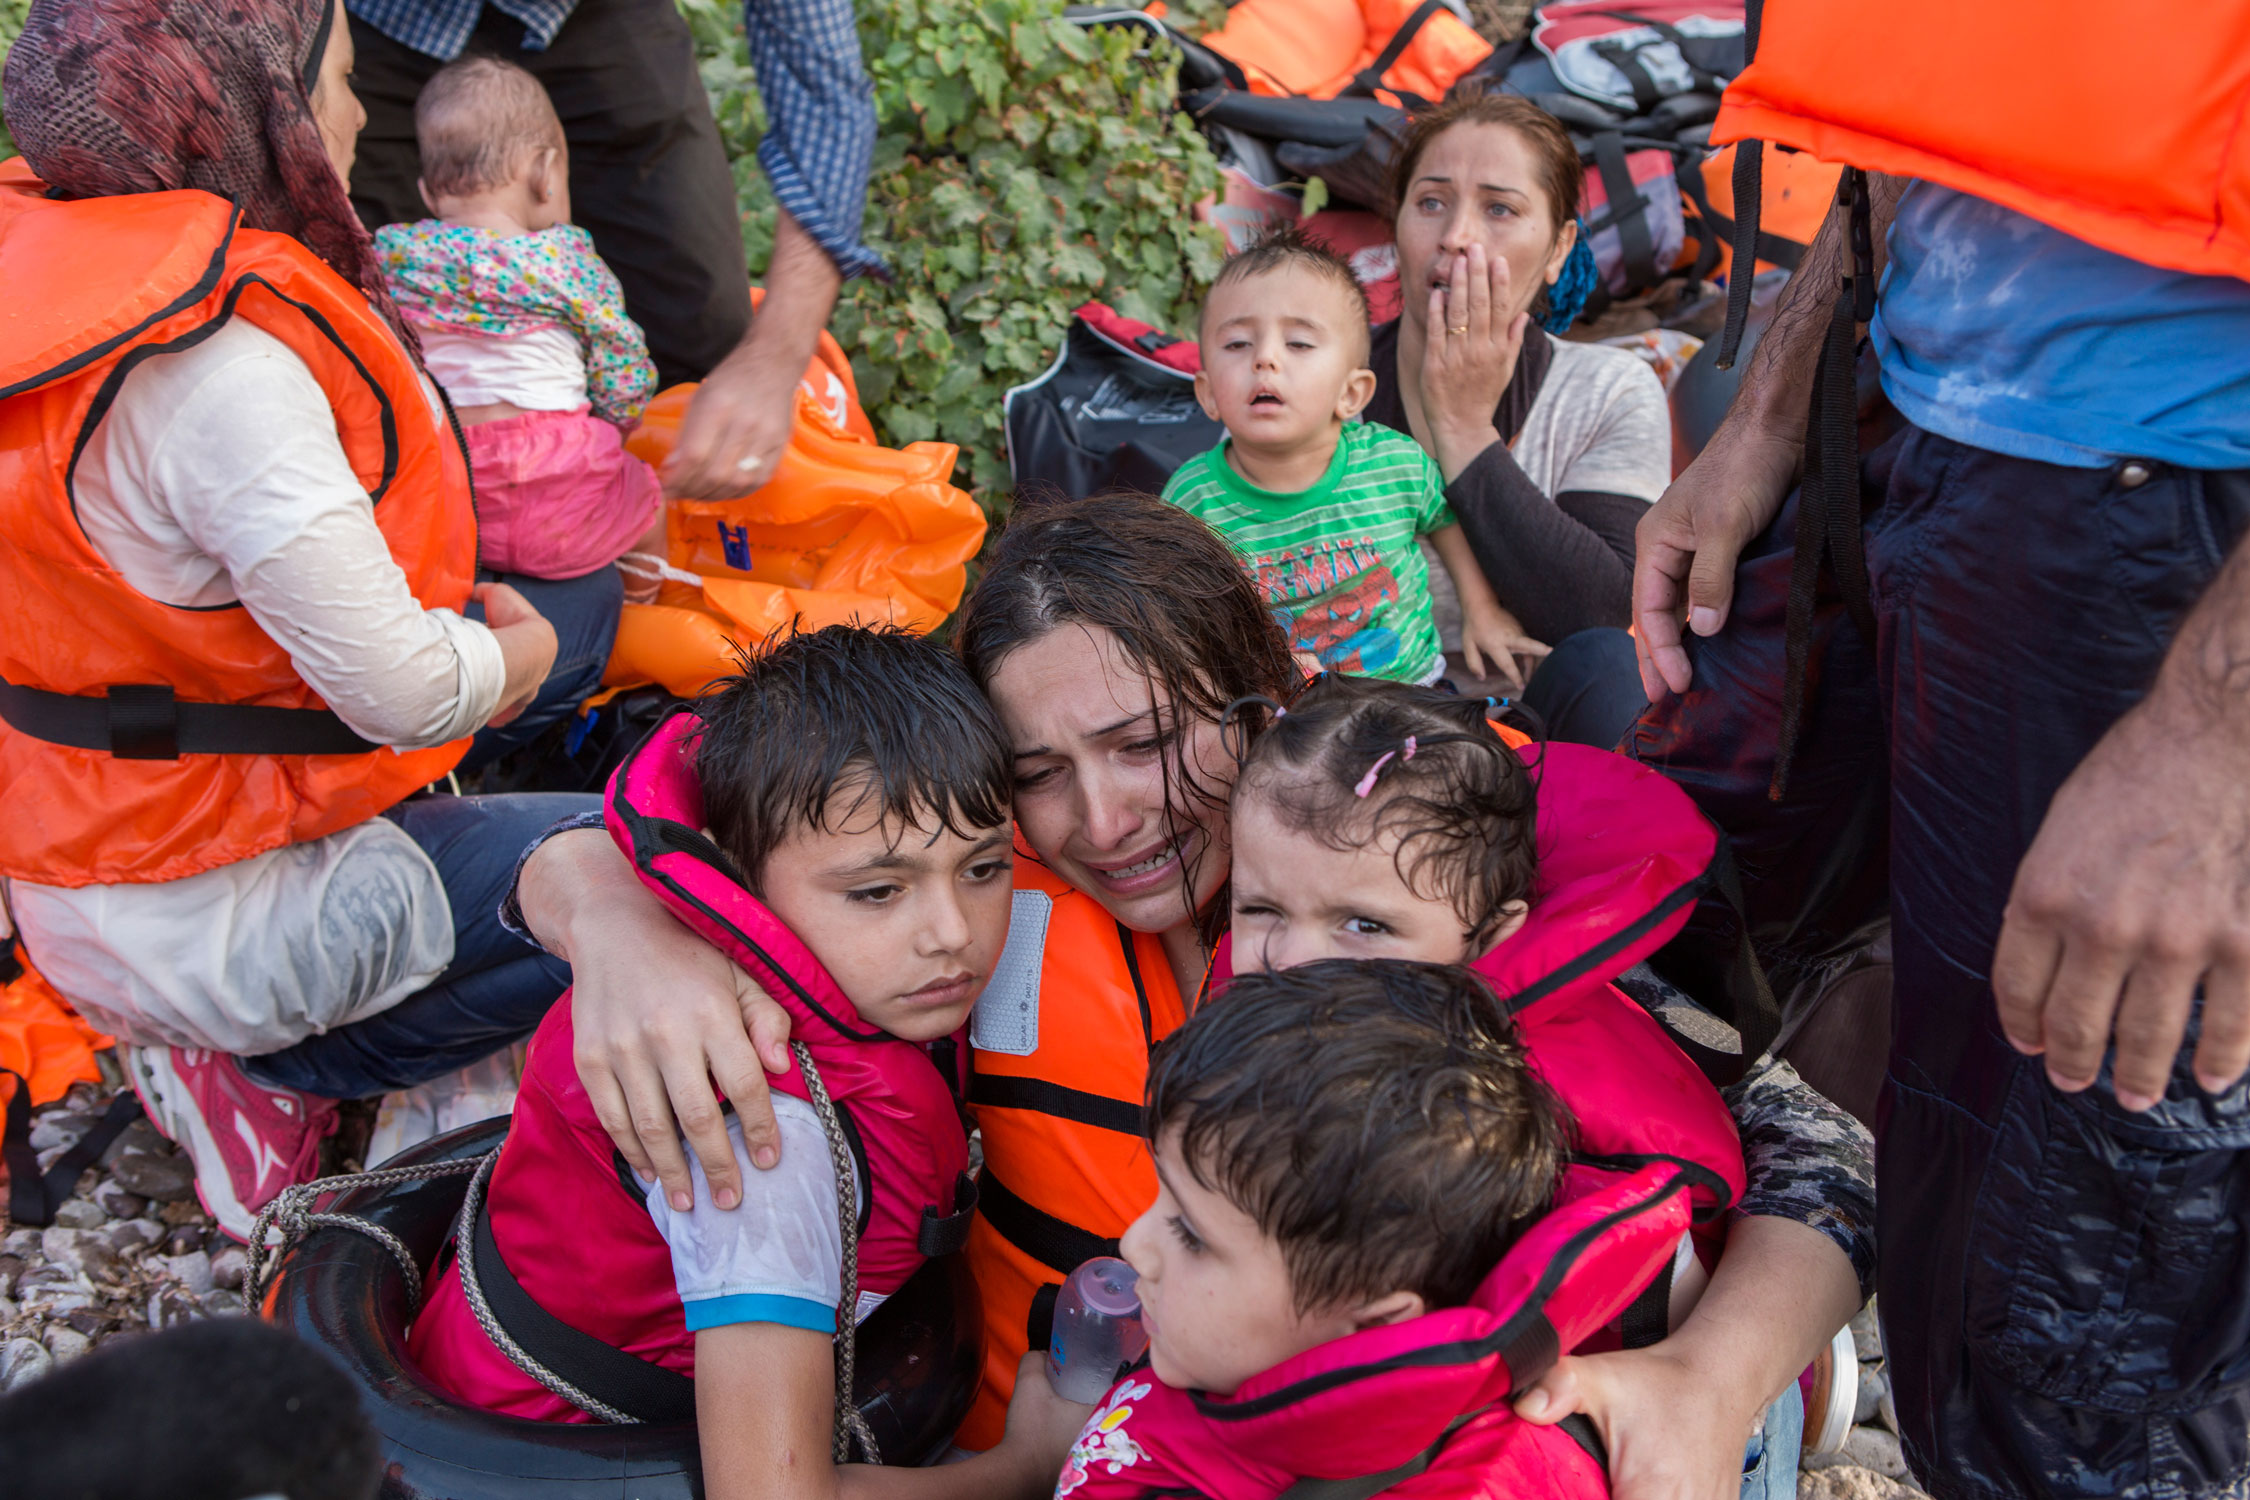 Photographer: Ivor Prickett |A Syrian woman cries in relief as she embraces her three young children. They have just endured a very rough crossing across the Aegean from Turkey to the Greek island of Lesbos.  Women and children currently account for two thirds of those crossing to Europe. In February 2016, they made up nearly 60 per cent of sea arrivals, compared to 27 per cent in September 2015.